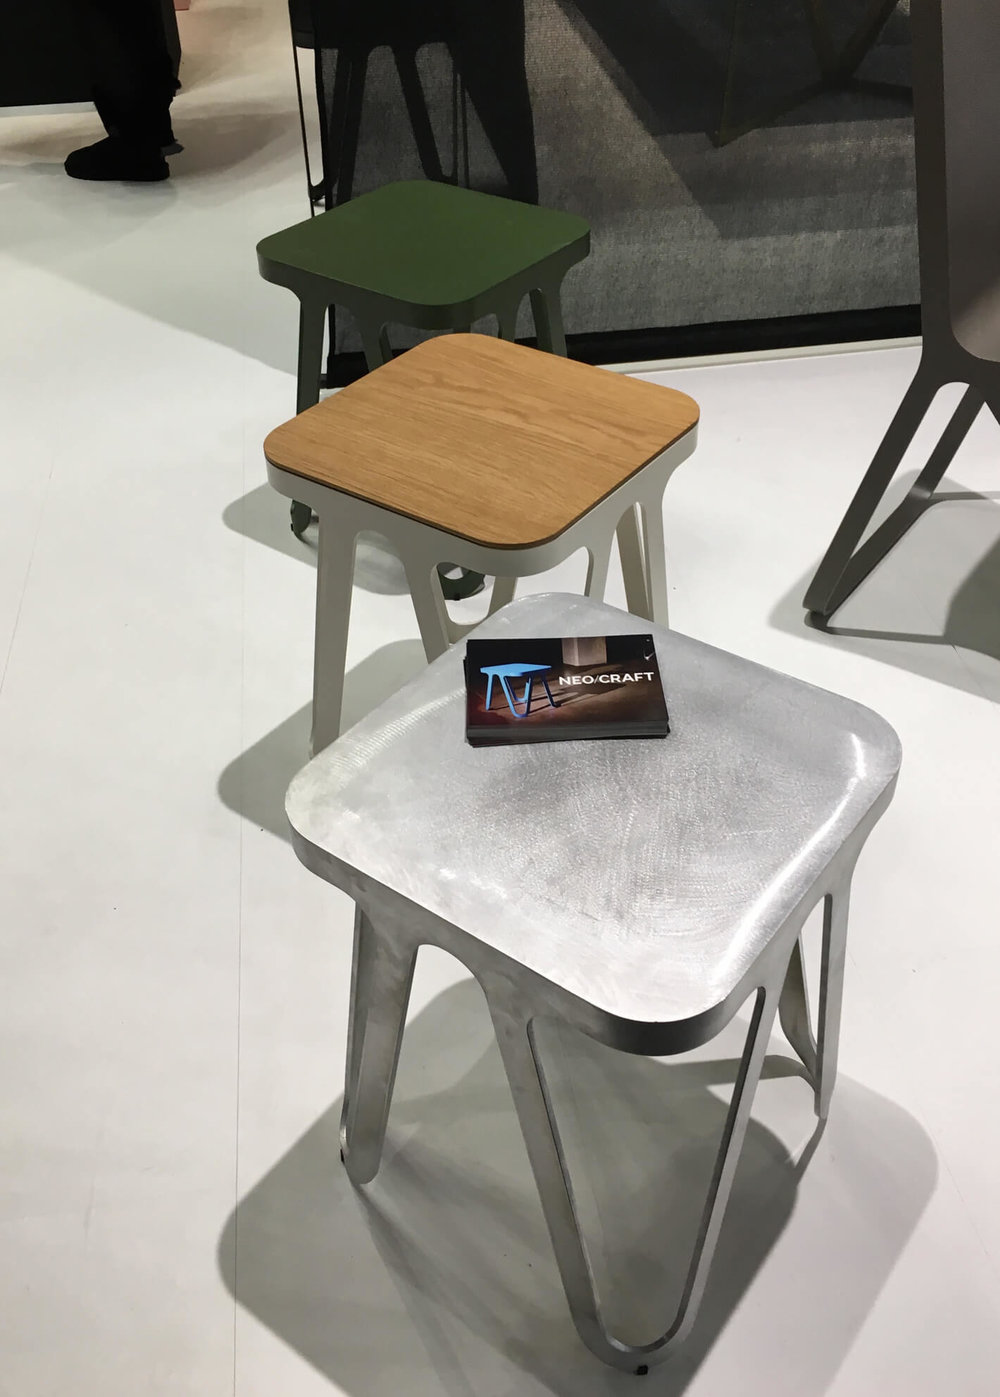 Neocraft Loop Stool, Gewinner German Design Awards 2016